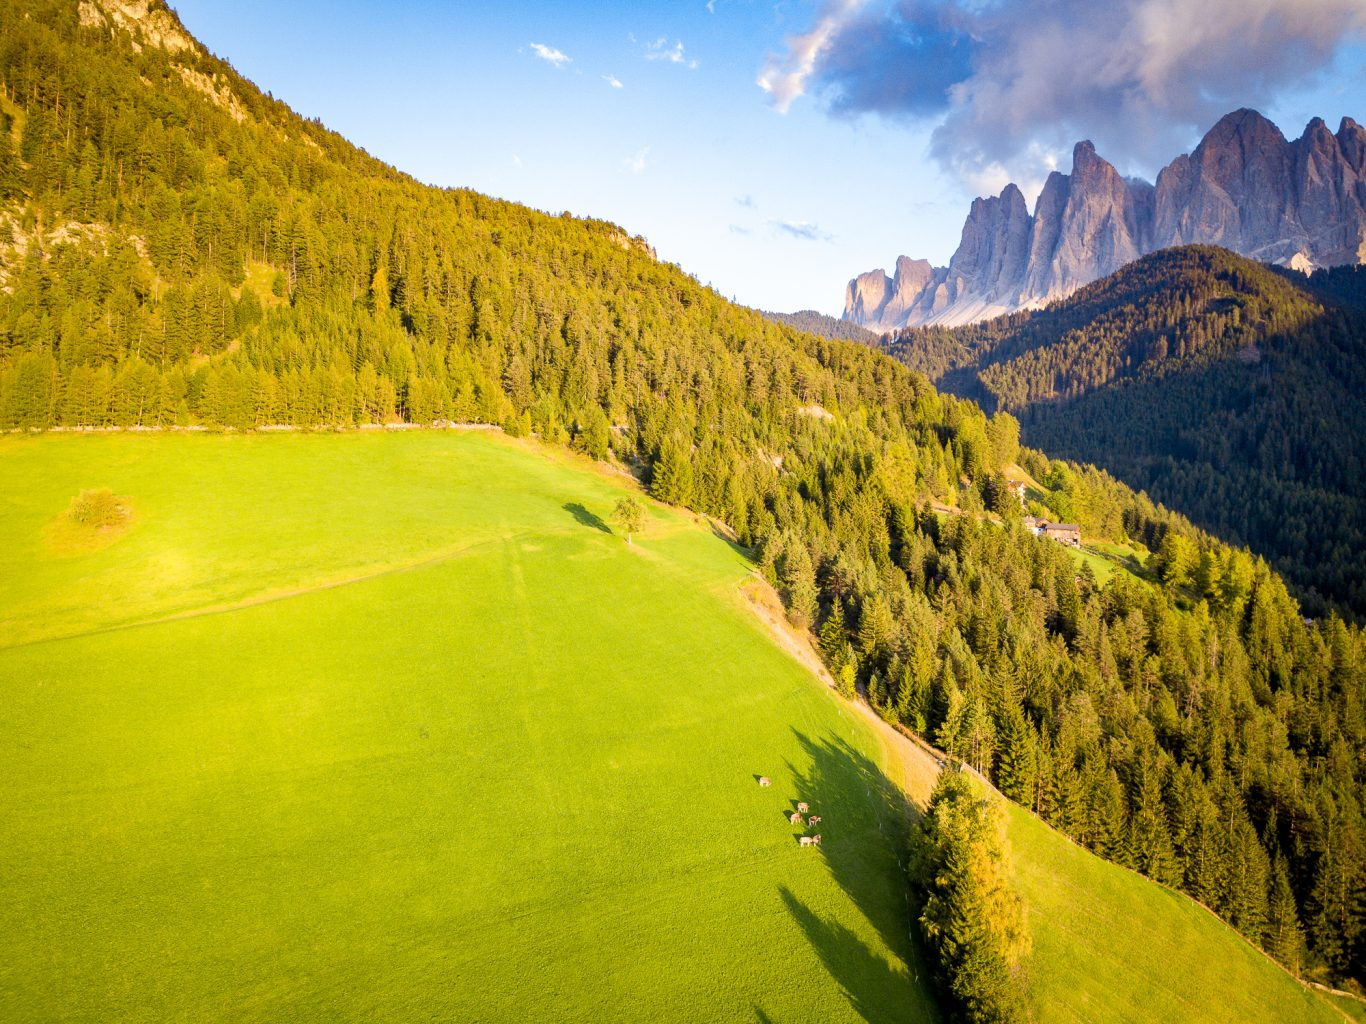 Cropping: Val di Funes - uncropped